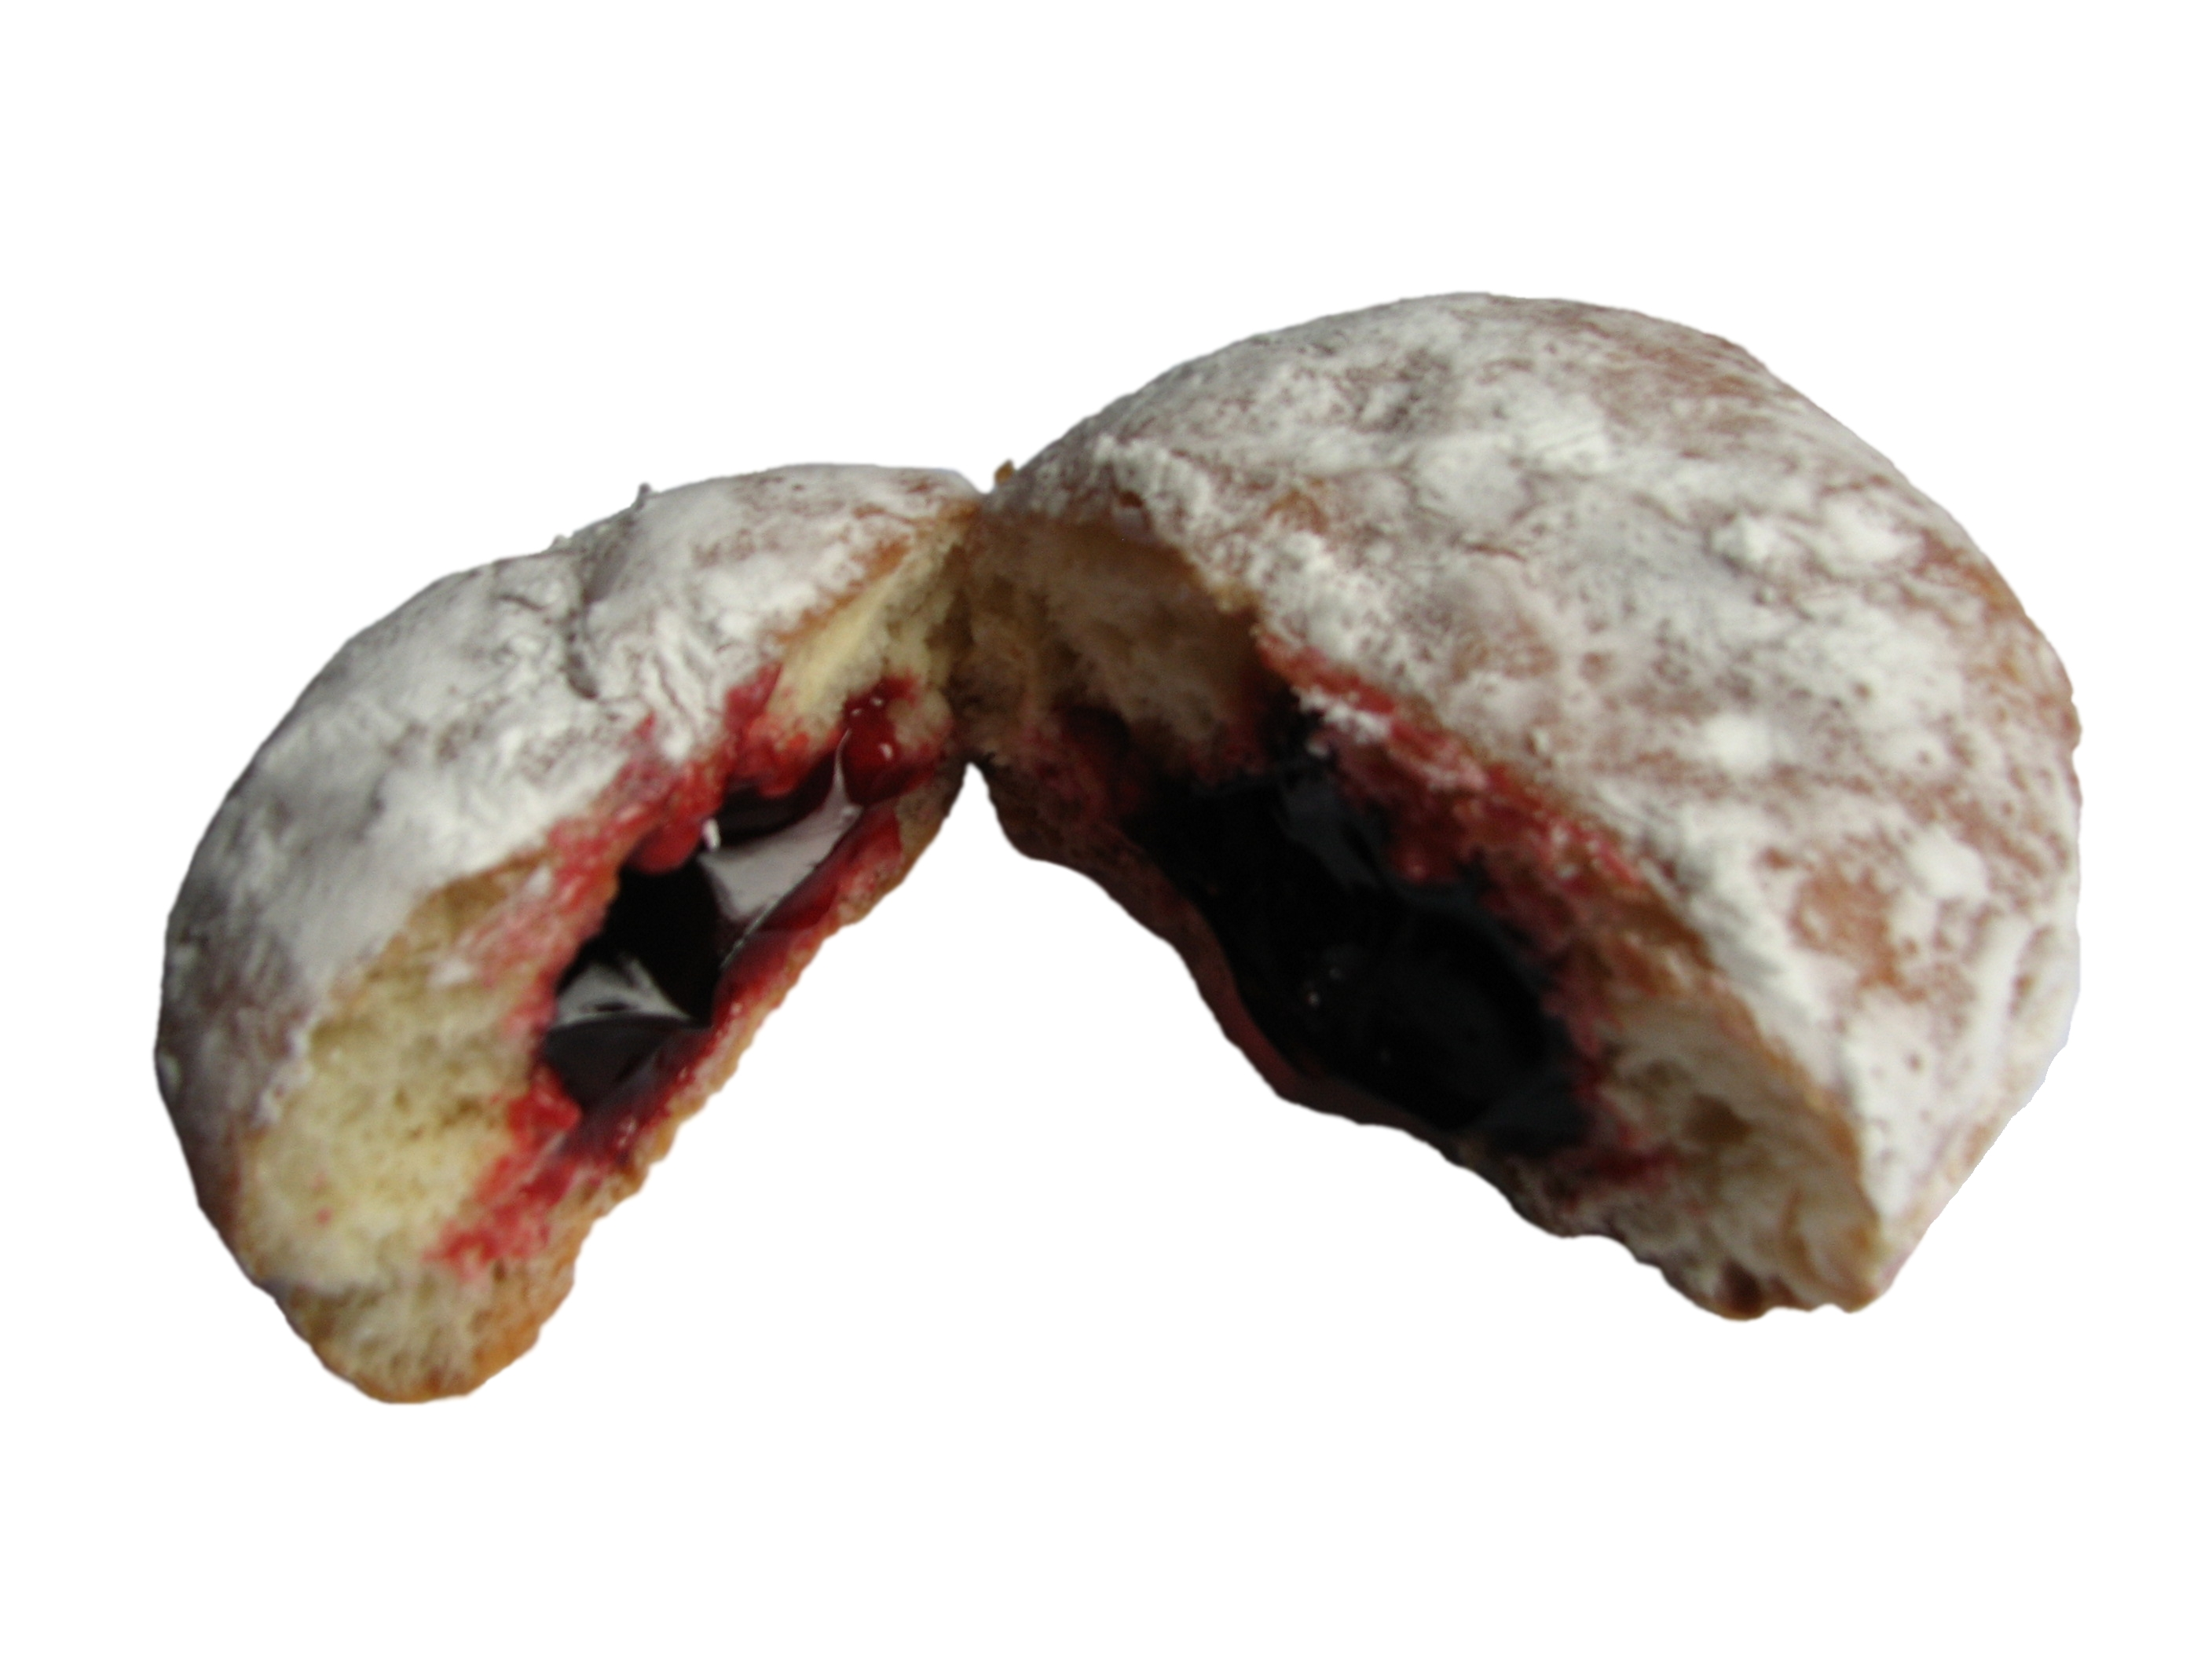 National jelly filled doughnut day five food finds about doughnuts the